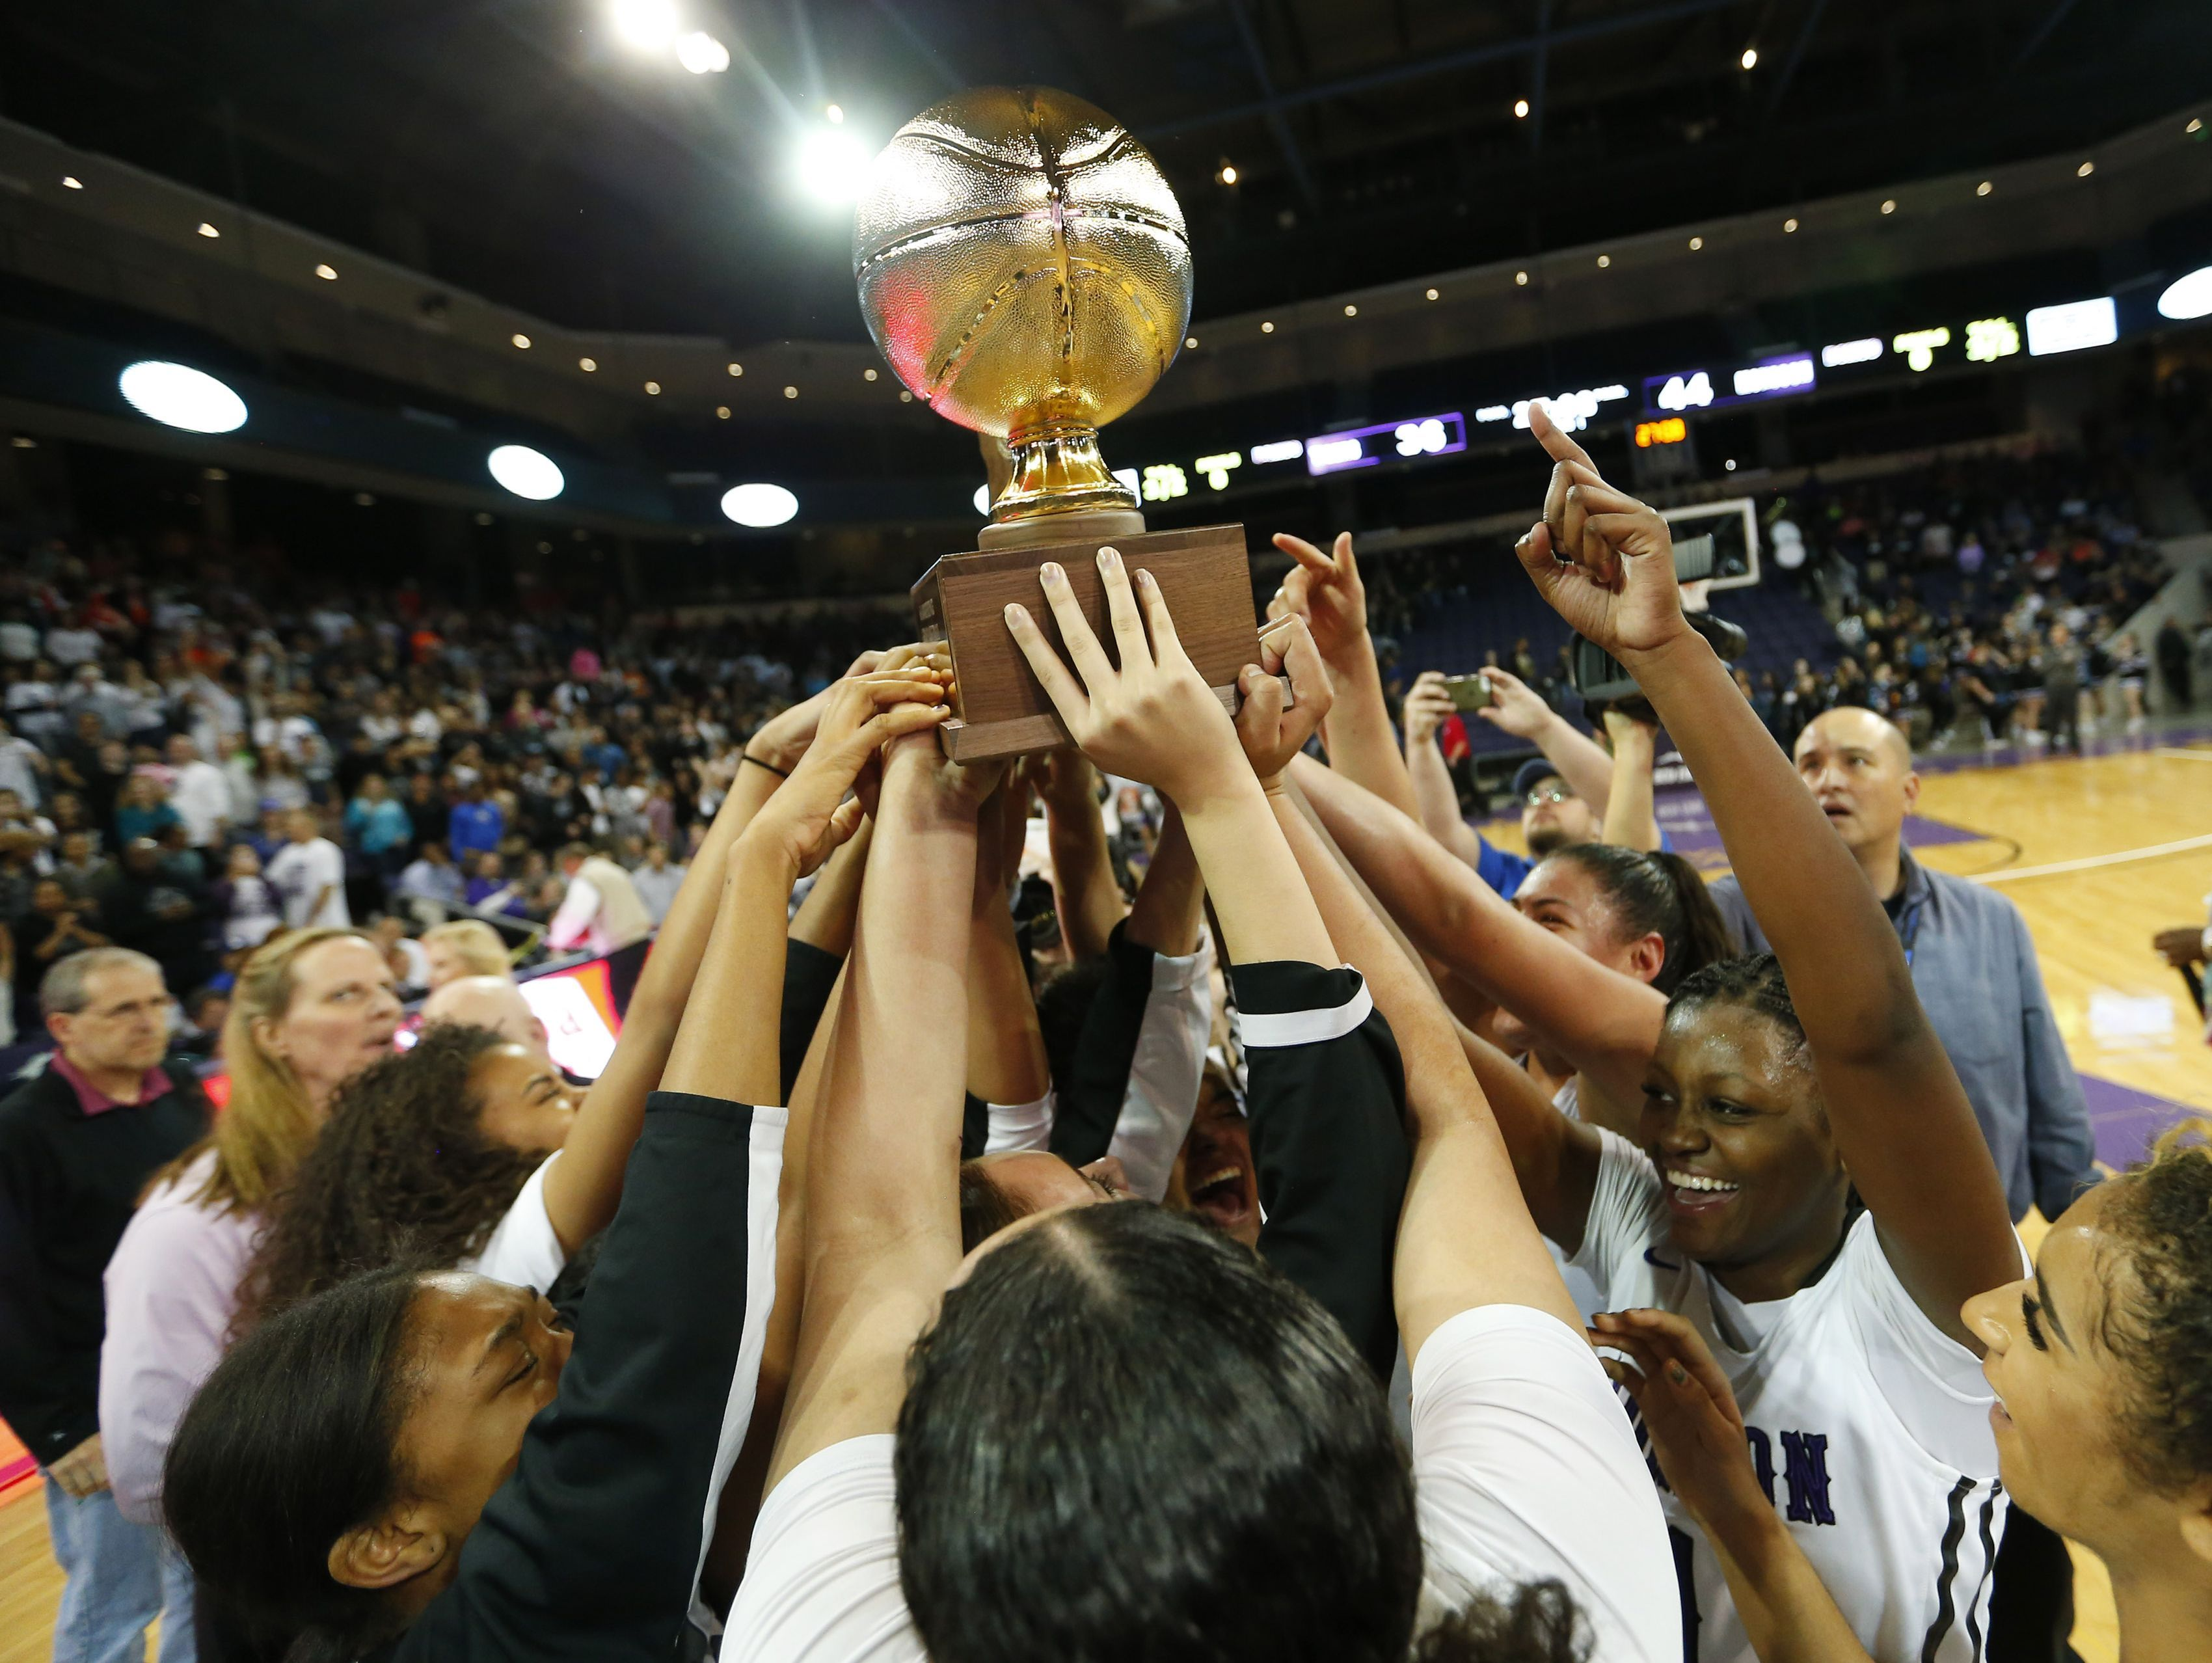 Valley Vista players celebrate their 44-36 victory against Millennium during the finals of the 6A Conference state championship at GCU Arena in Phoenix, Ariz. February 28, 2017.